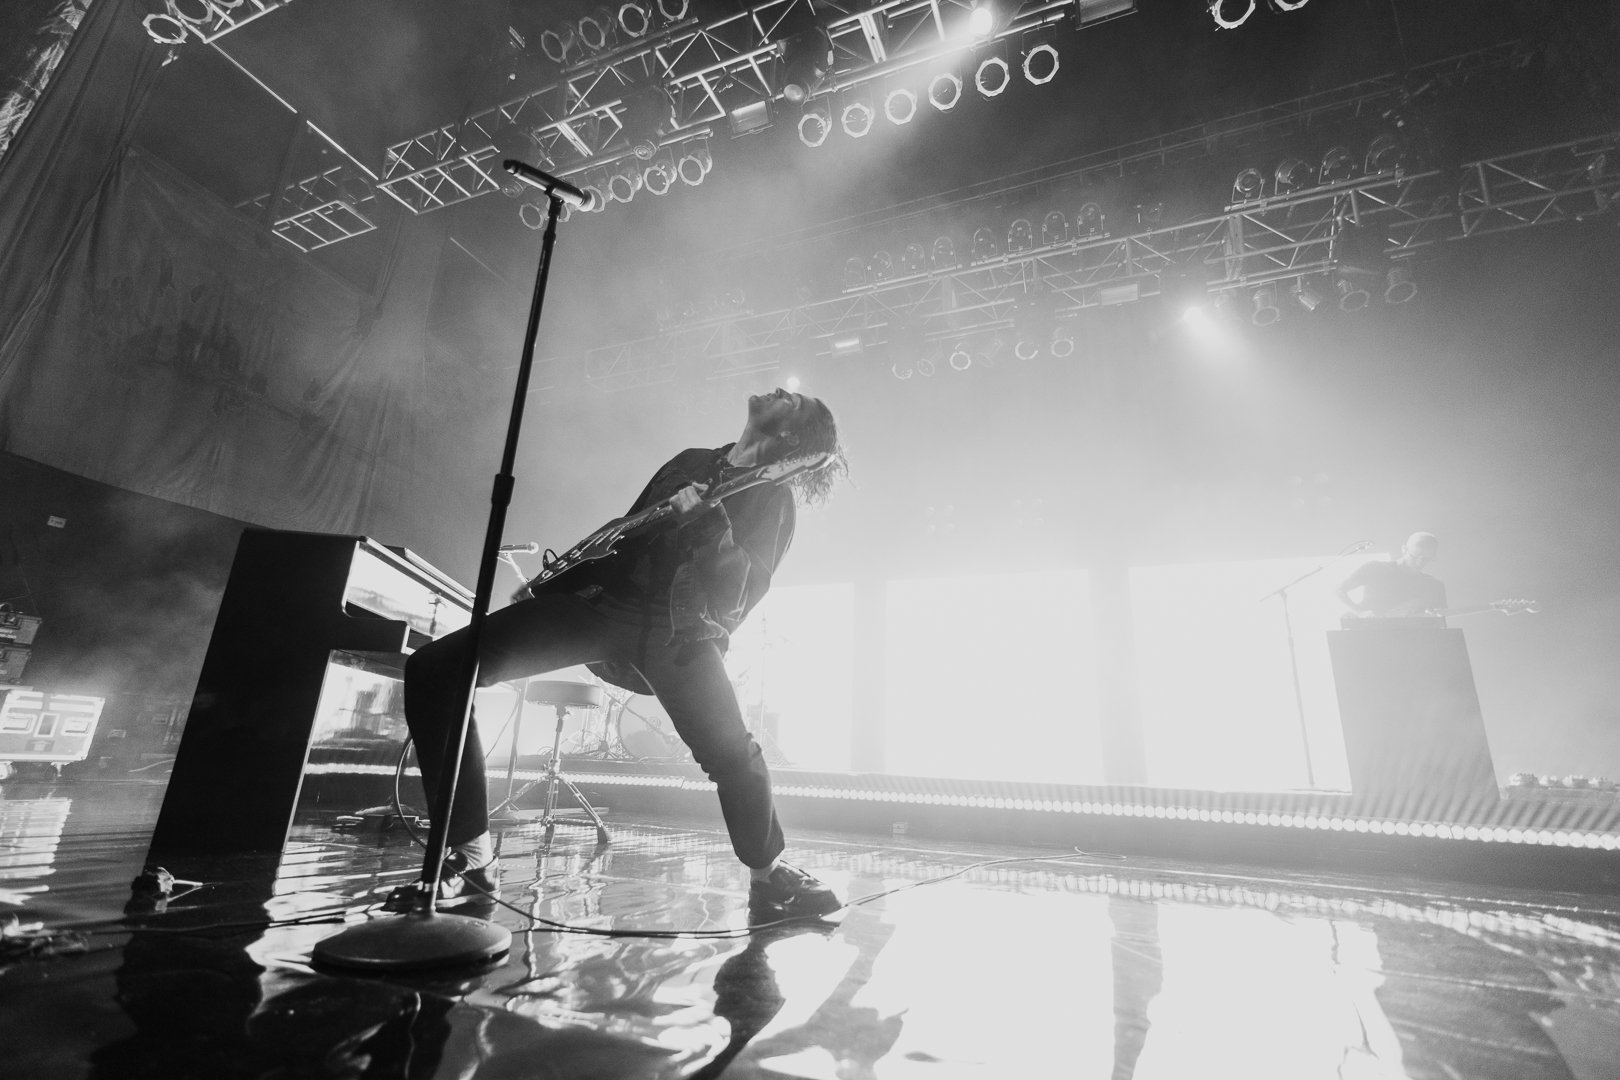 .@ThisisLANY performing live at the @HOBHouston. Photos by @ariefstark. https://t.co/UzlJhHYLr2